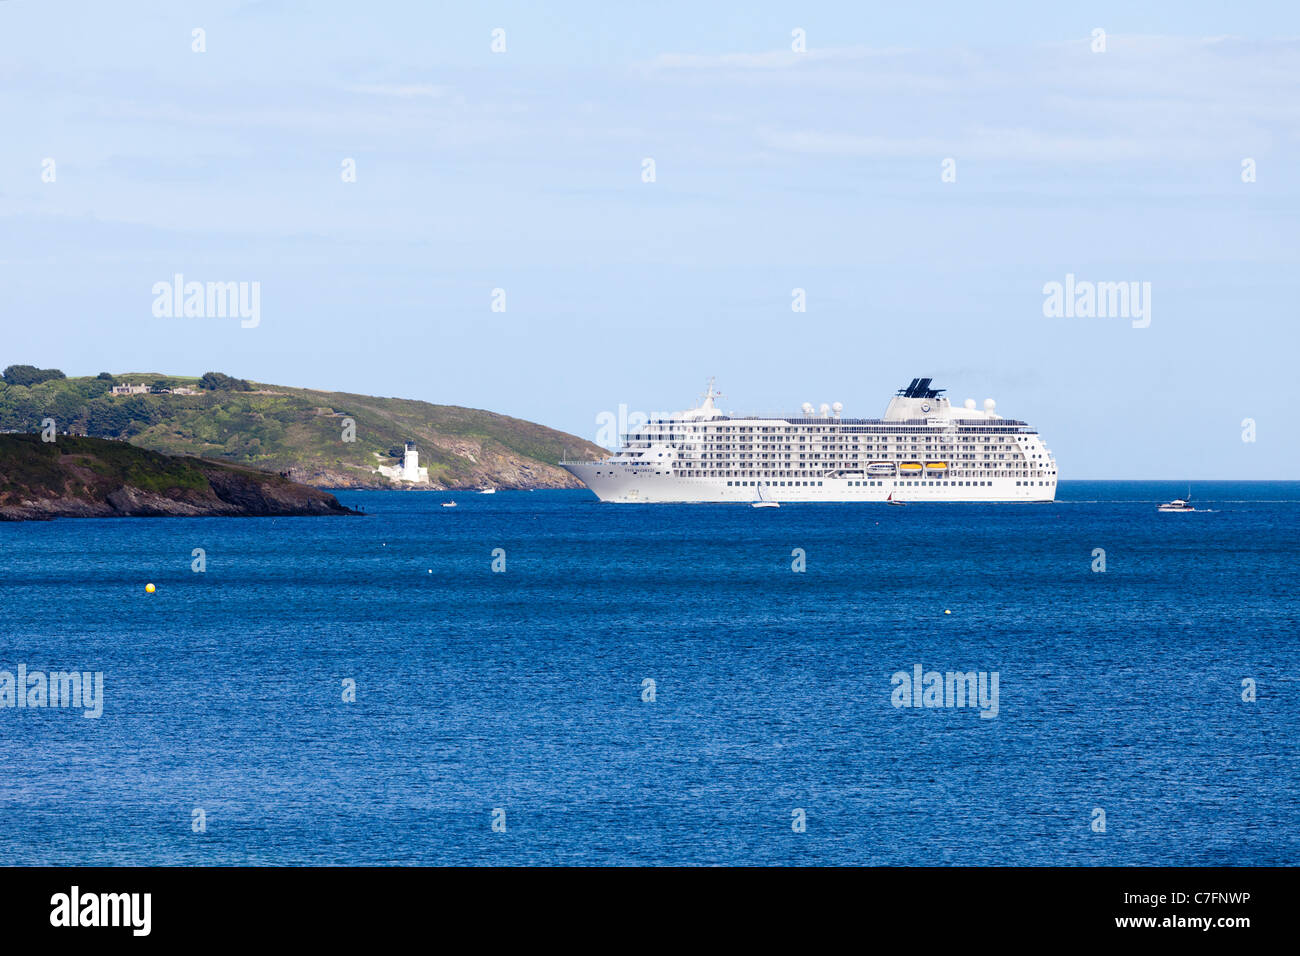 Luxury residential cruise liner 'The World' entering Carrick Roads to dock at Falmouth, Cornwall - Stock Image